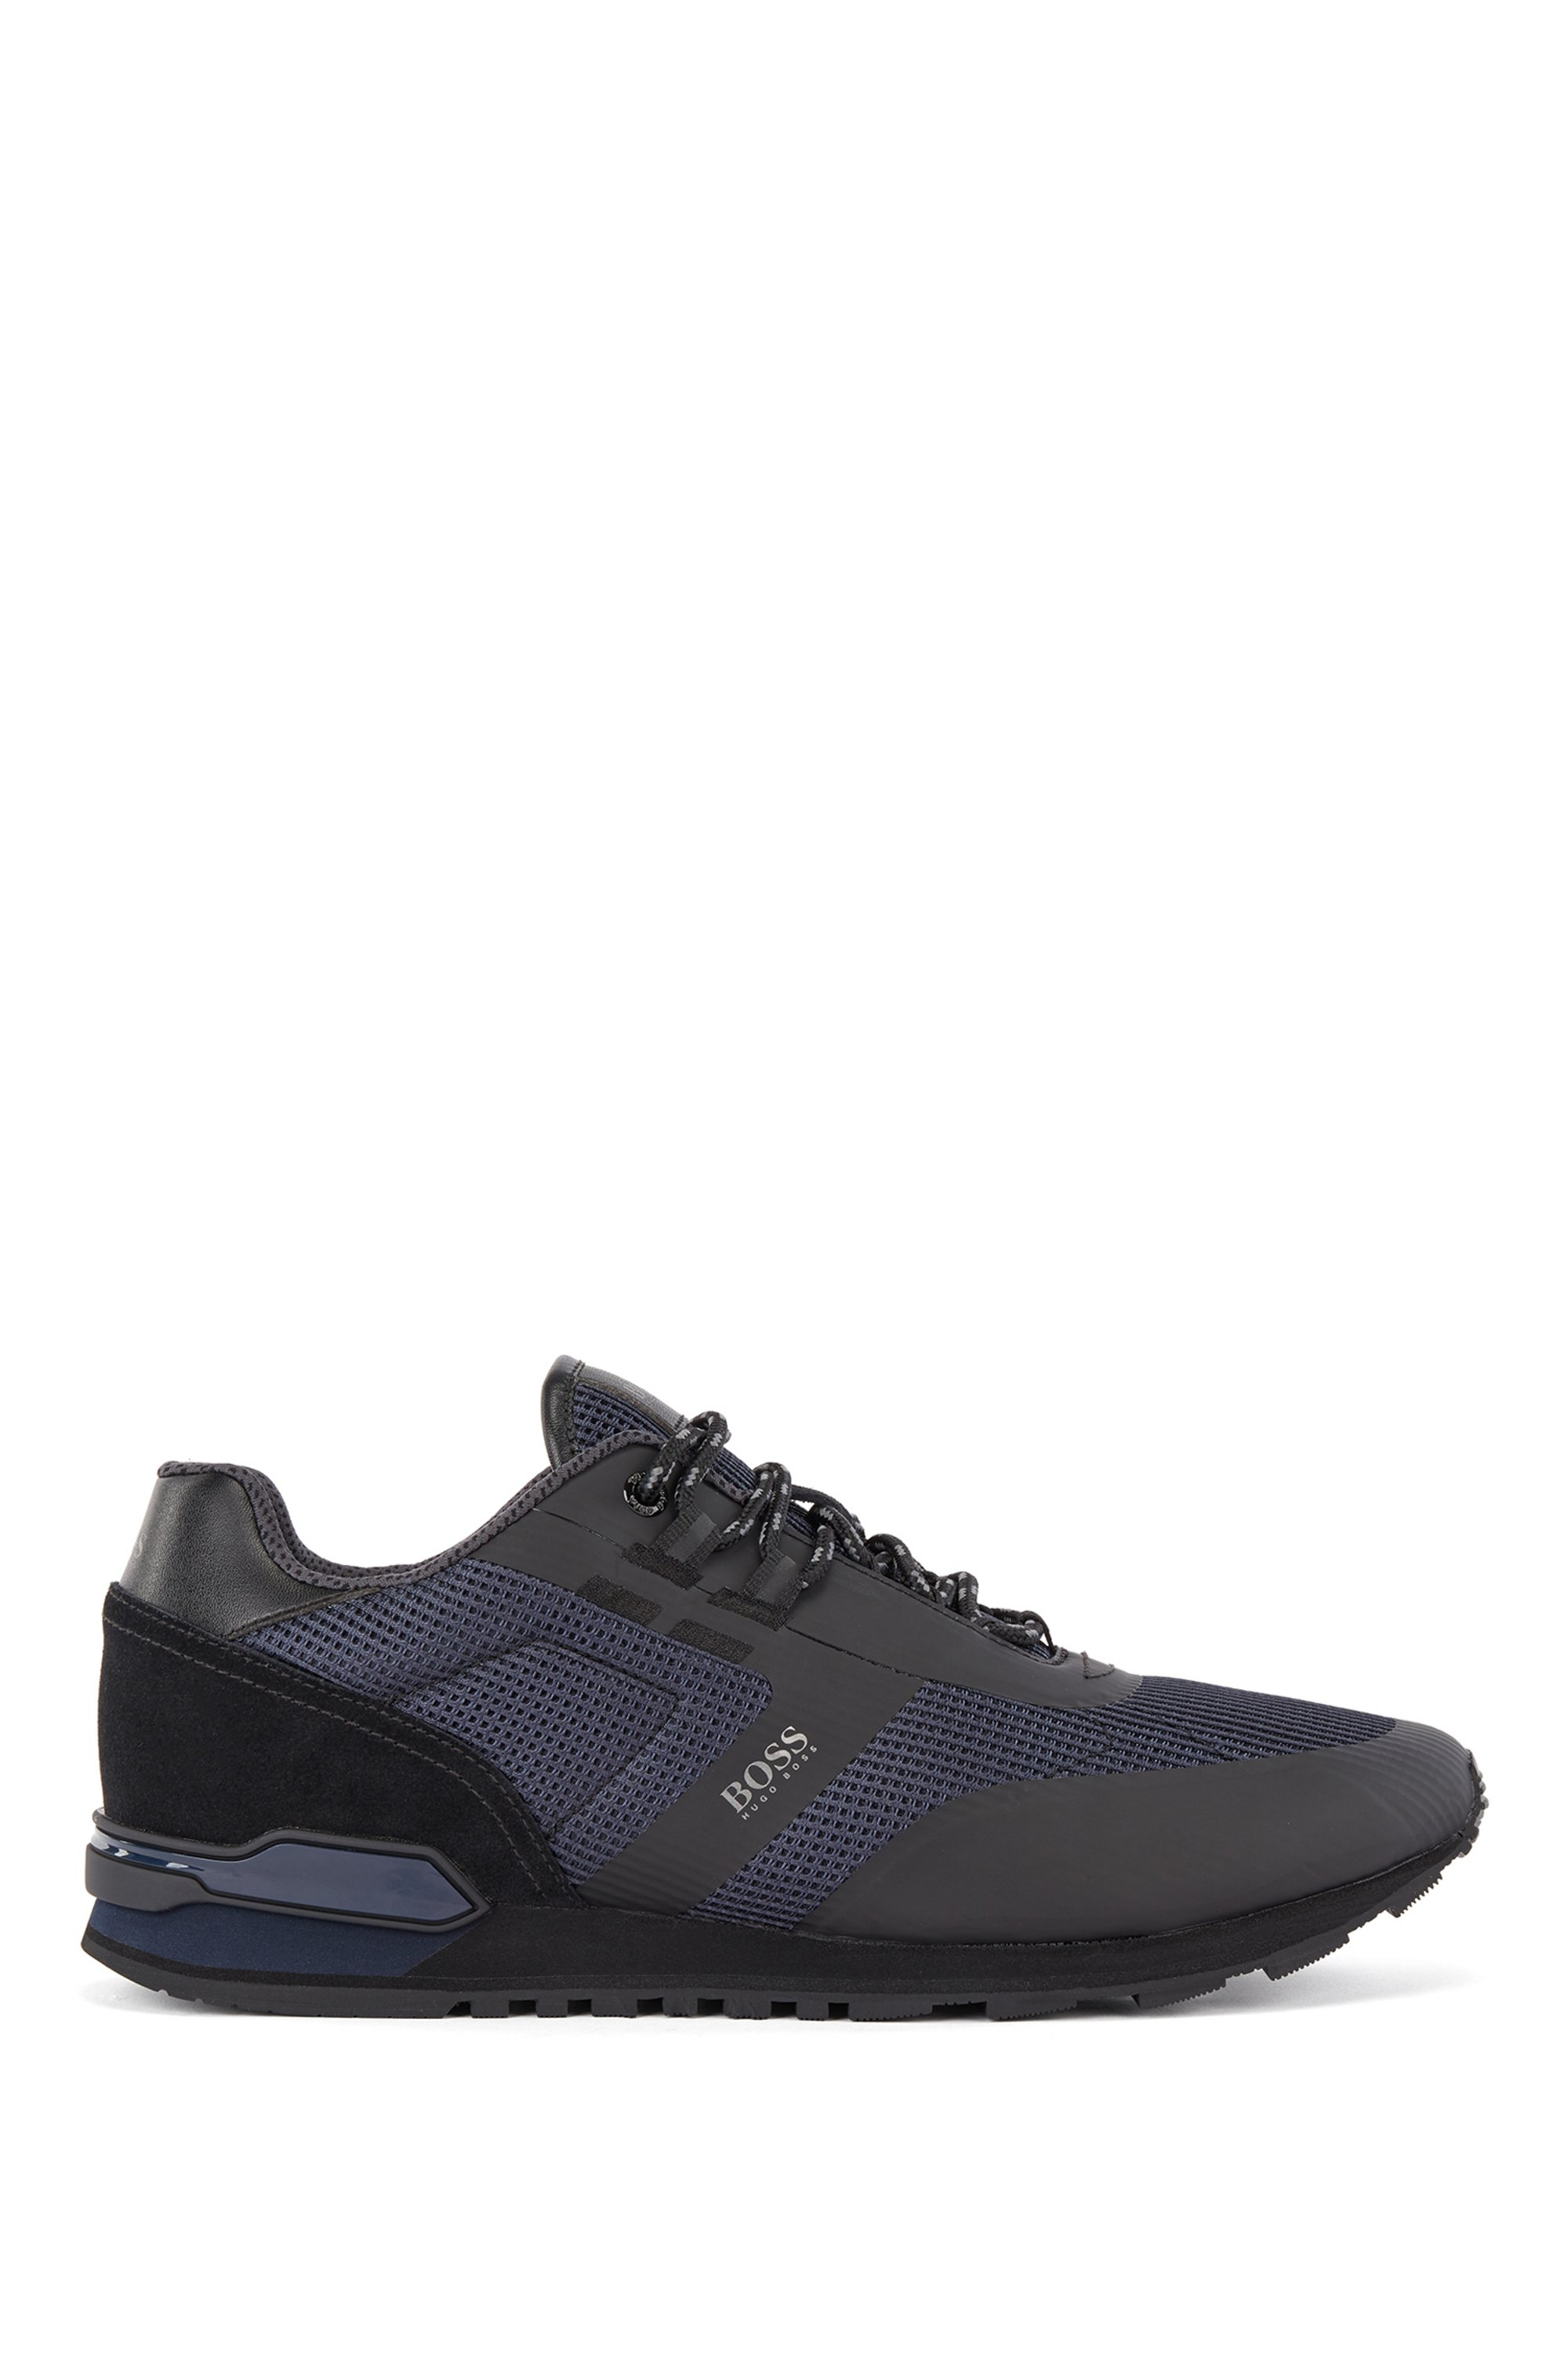 Hybrid trainers in nylon, mesh and leather, Dark Blue